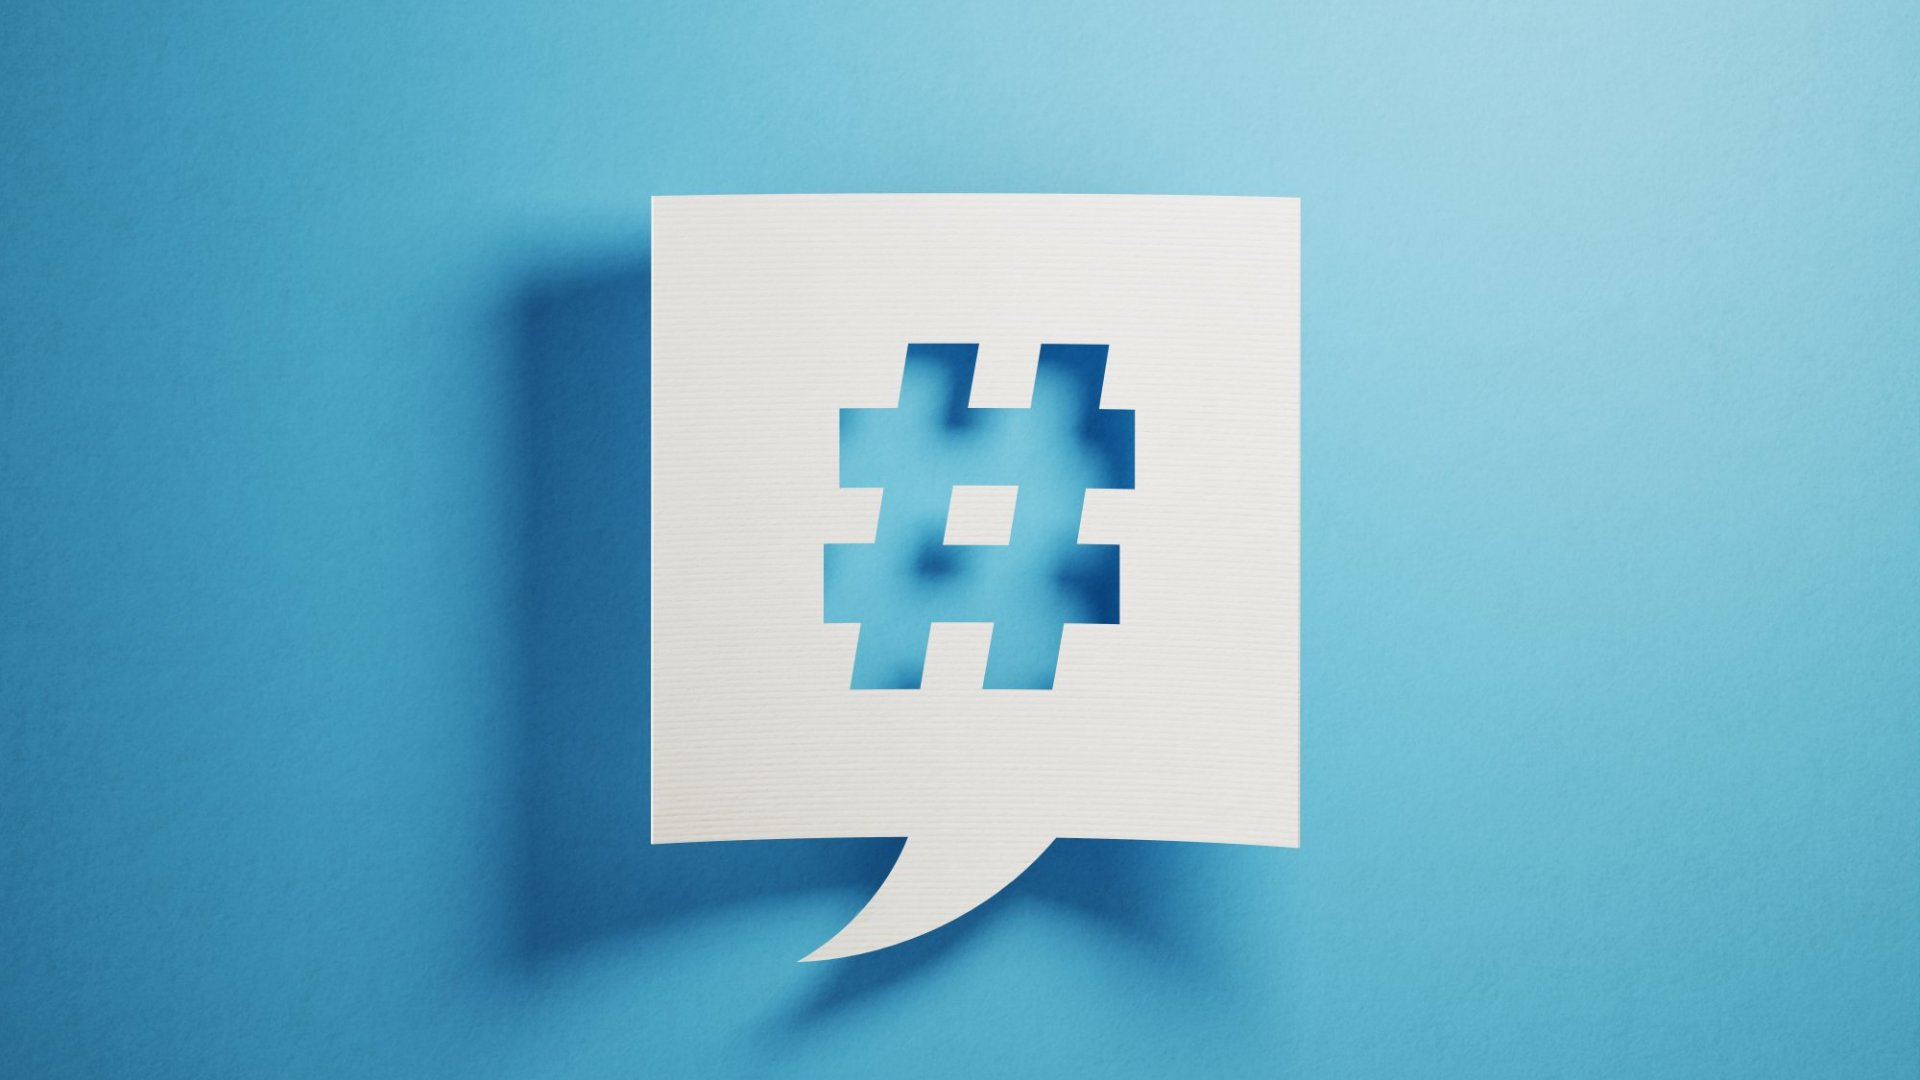 How to Build a Social Media Following Using These 2 Writing Tips